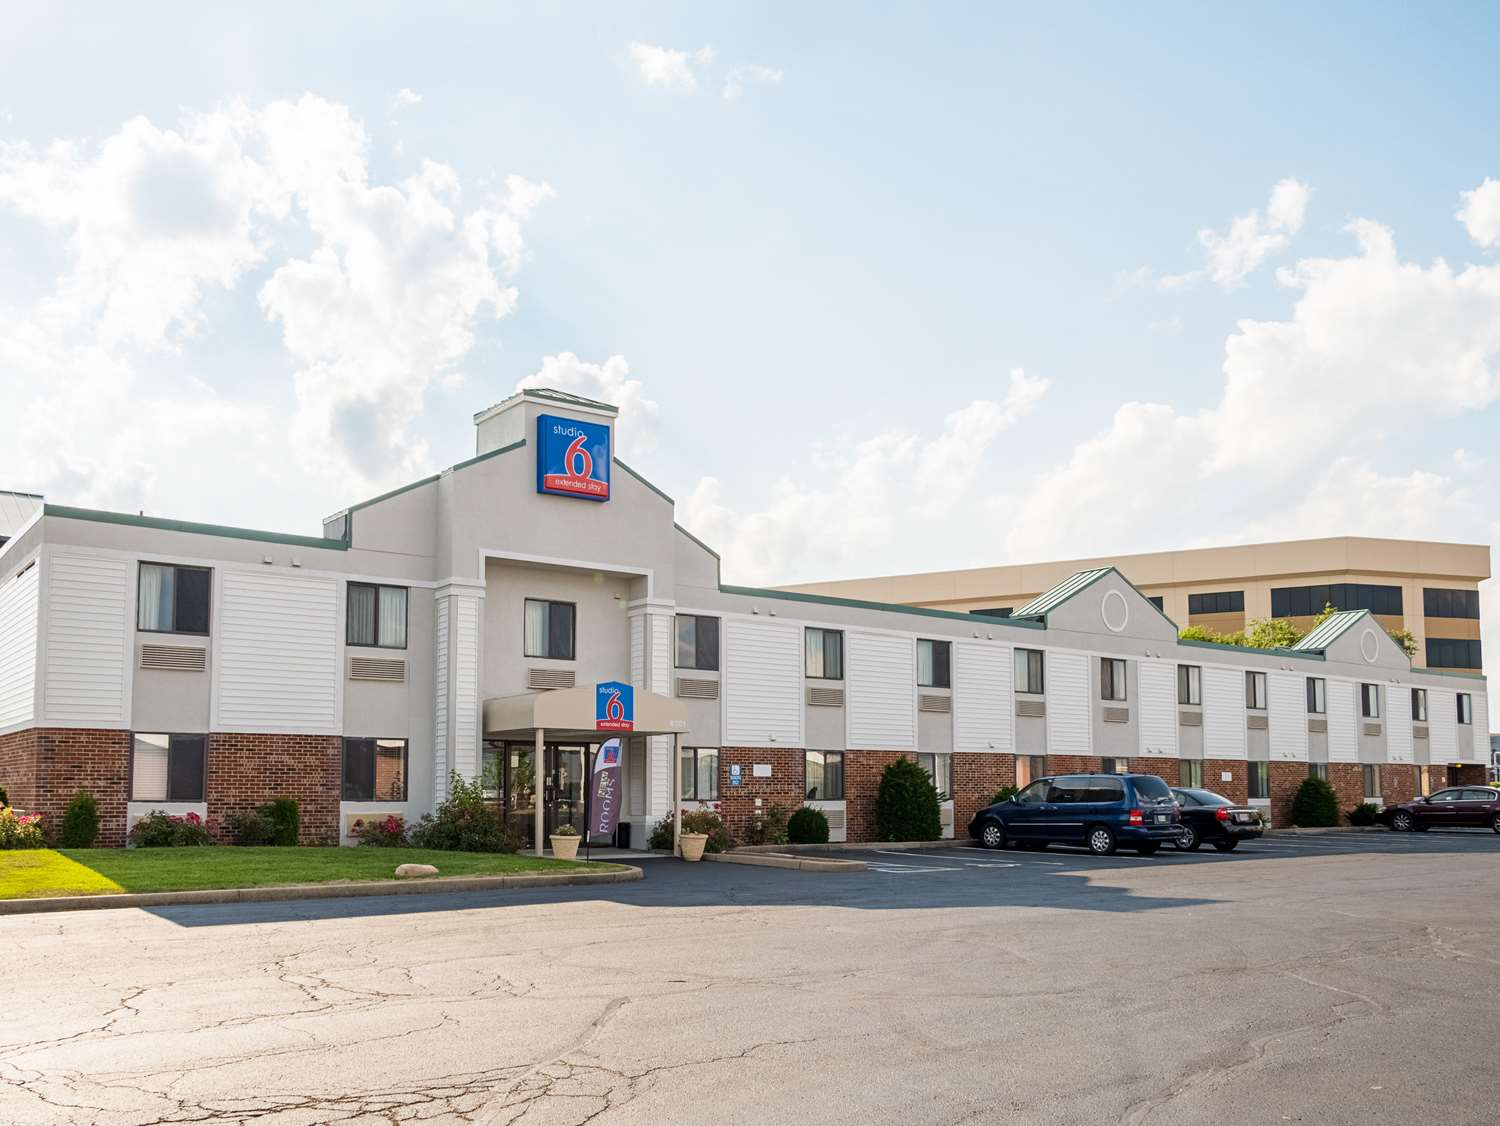 Exterior View Studio 6 Extended Stay Hotel Miamisburg